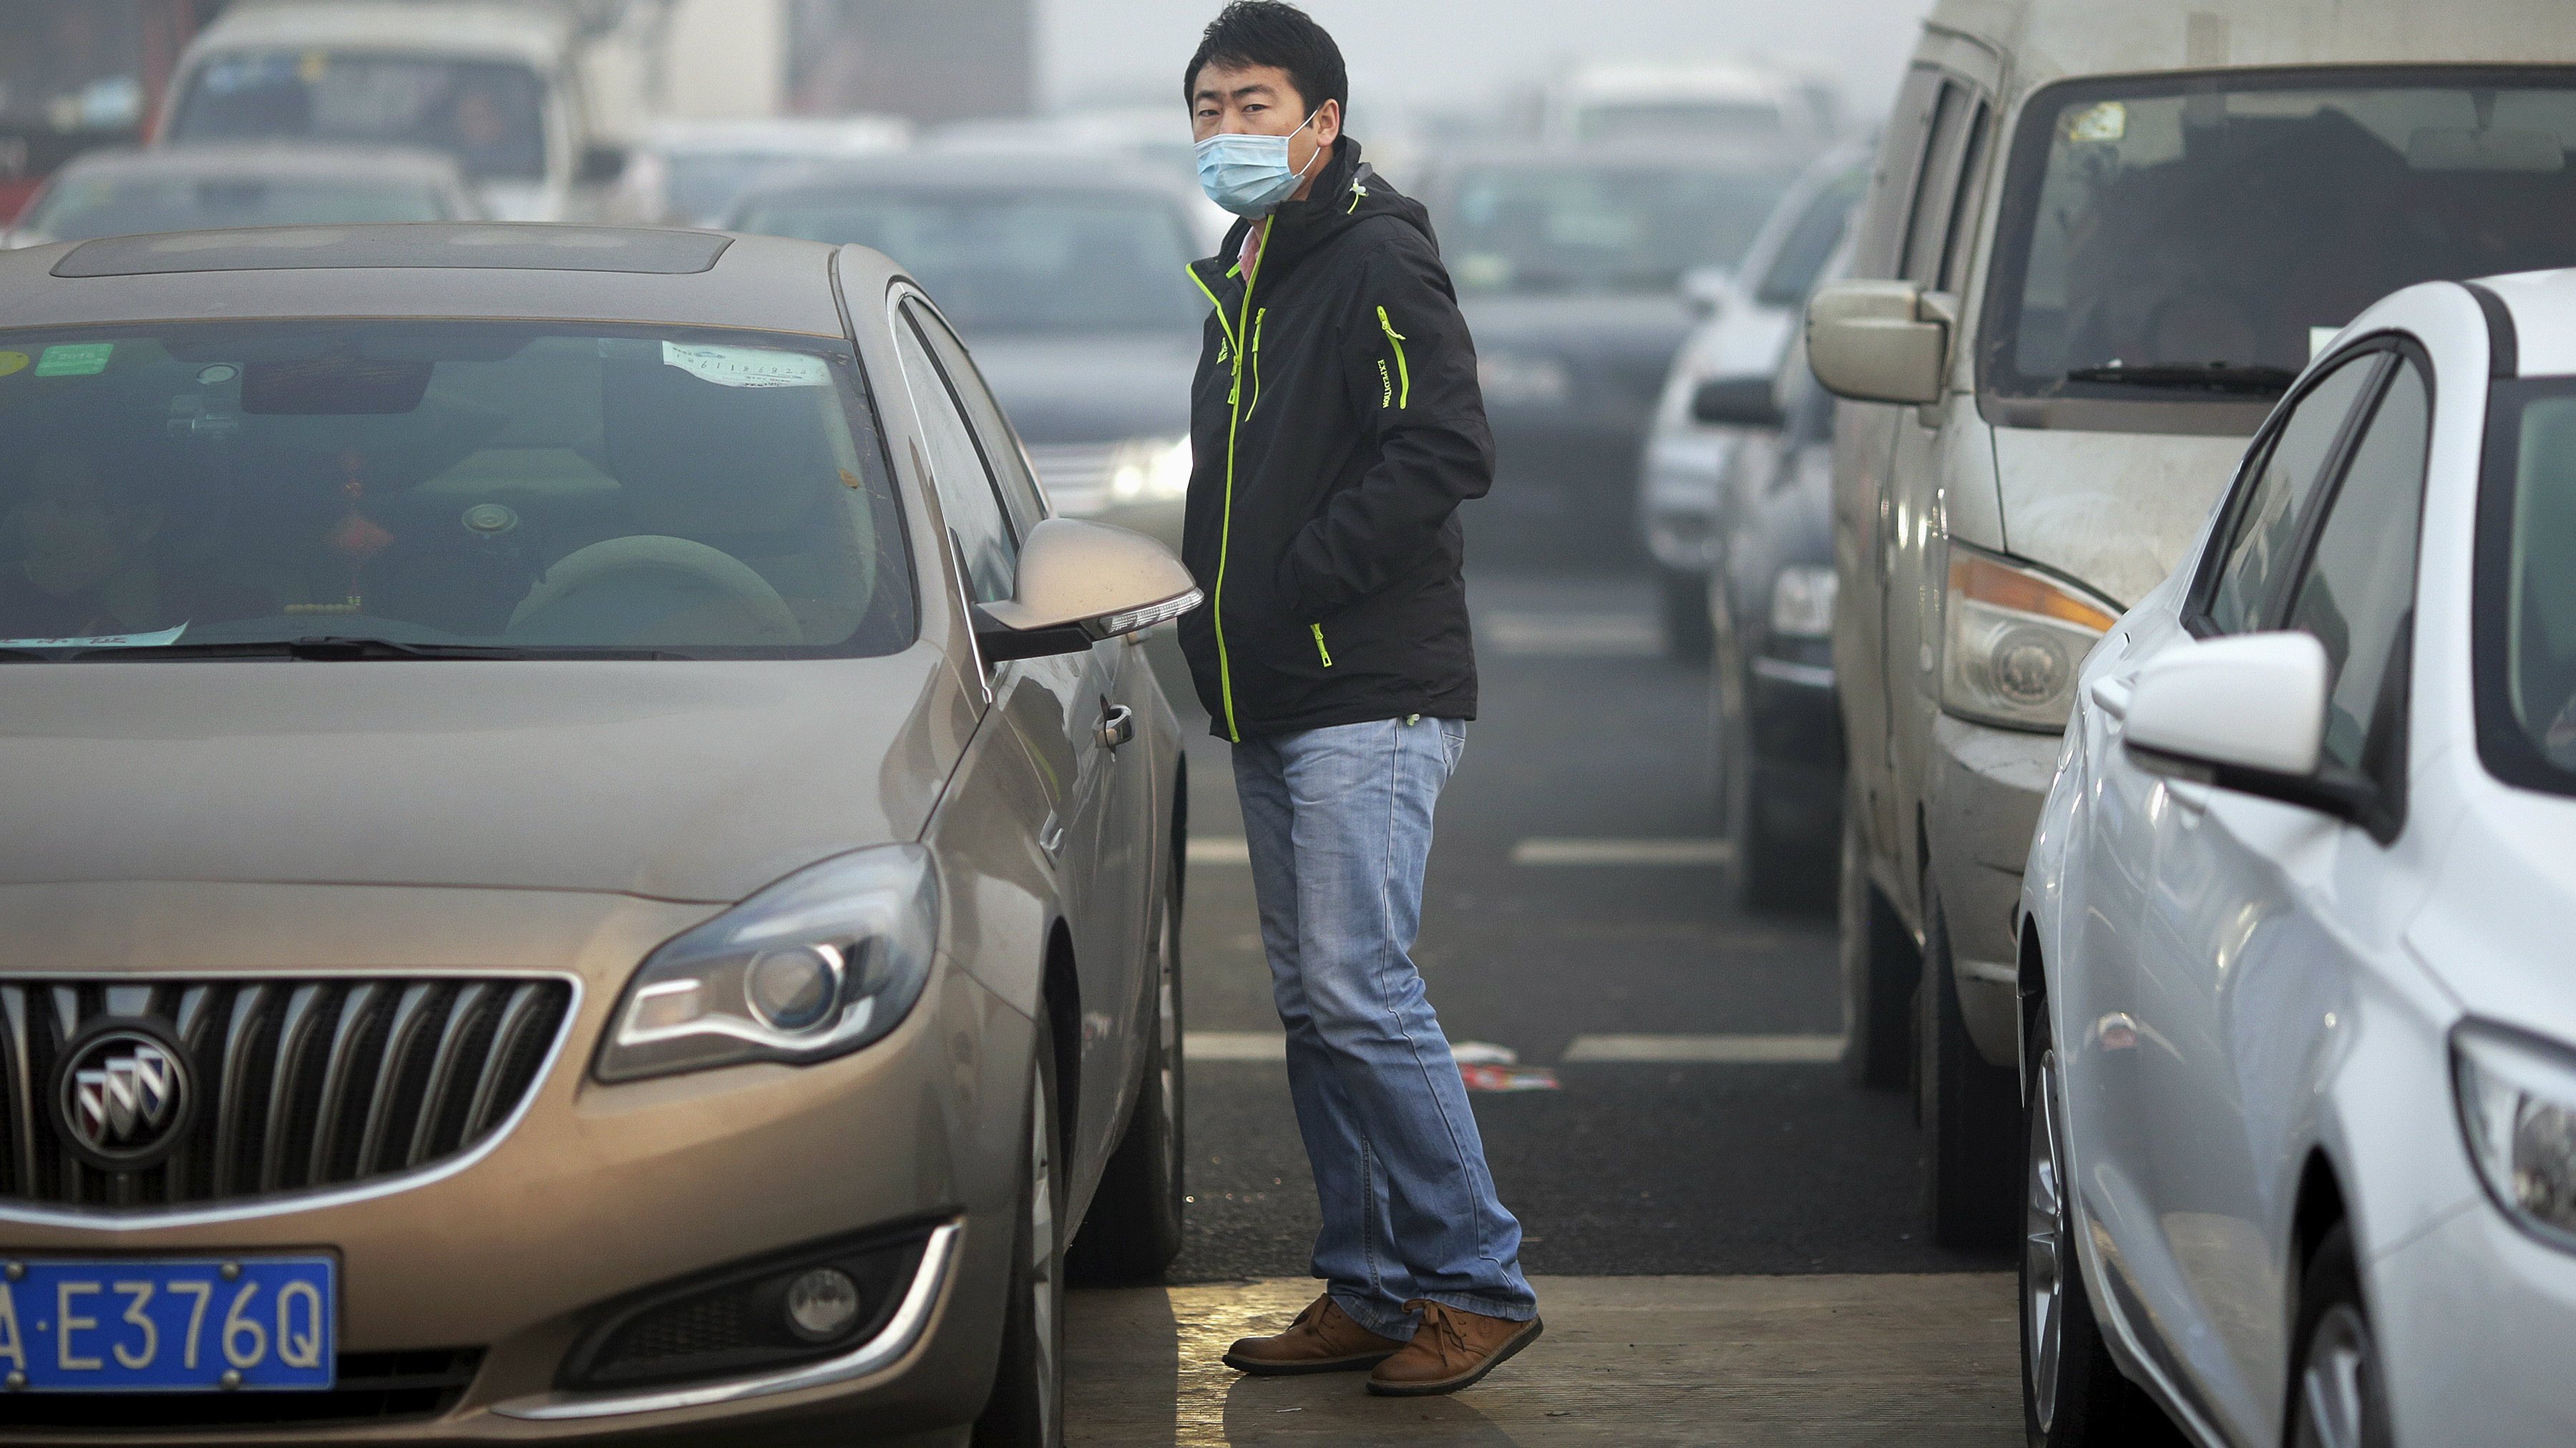 A driver wears a mask between vehicles stranded on a highway between Beijing and Hebei province, China, that is closed due to smog on an extremely polluted day November 30, 2015.